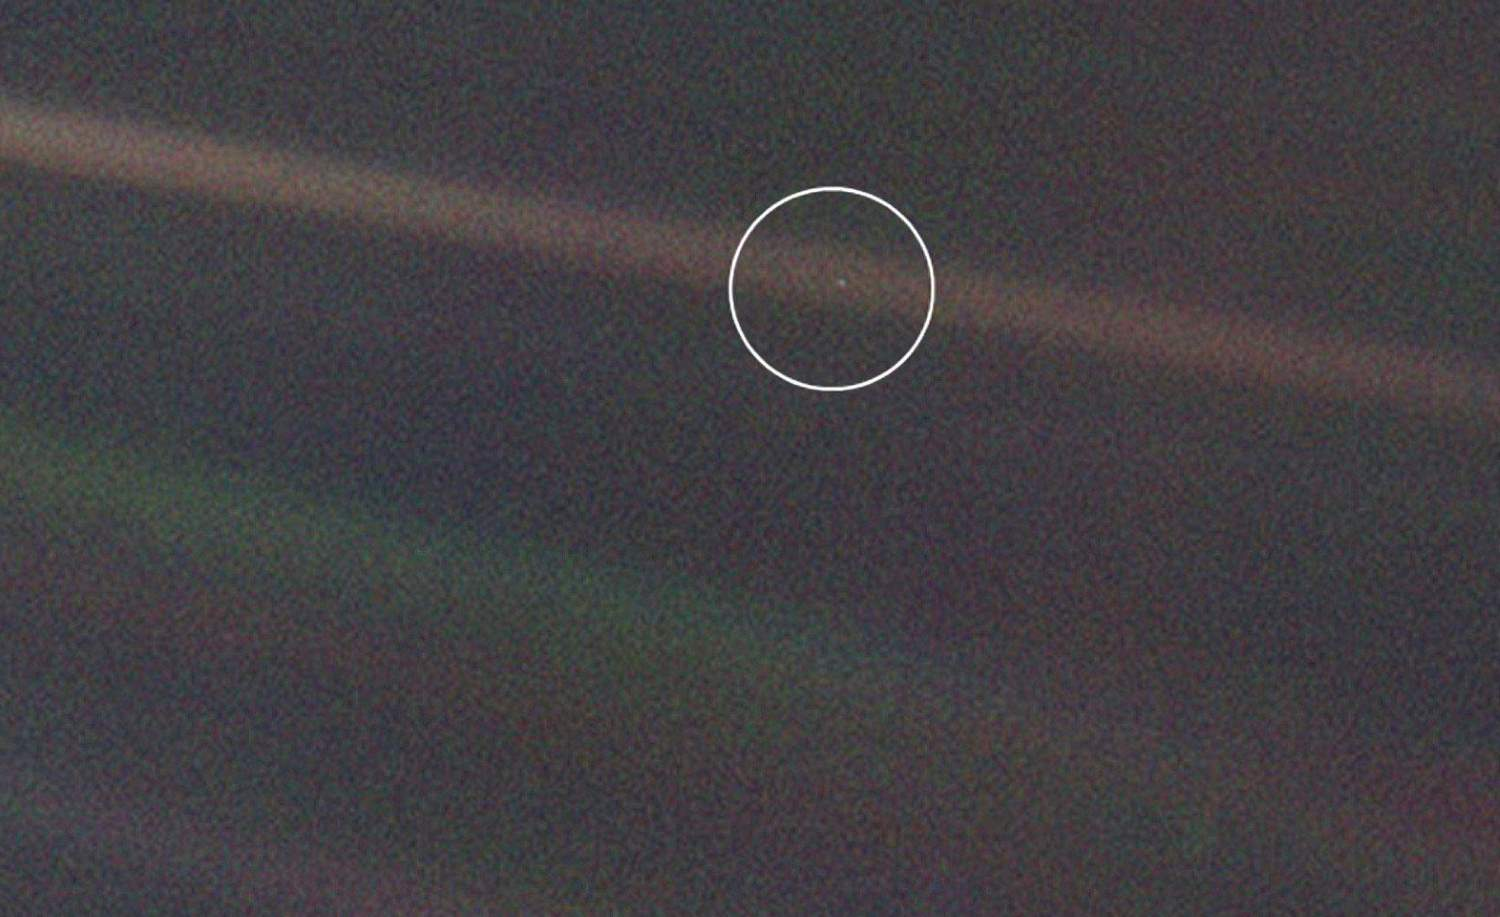 Voyager 1 Pale Blue Dot